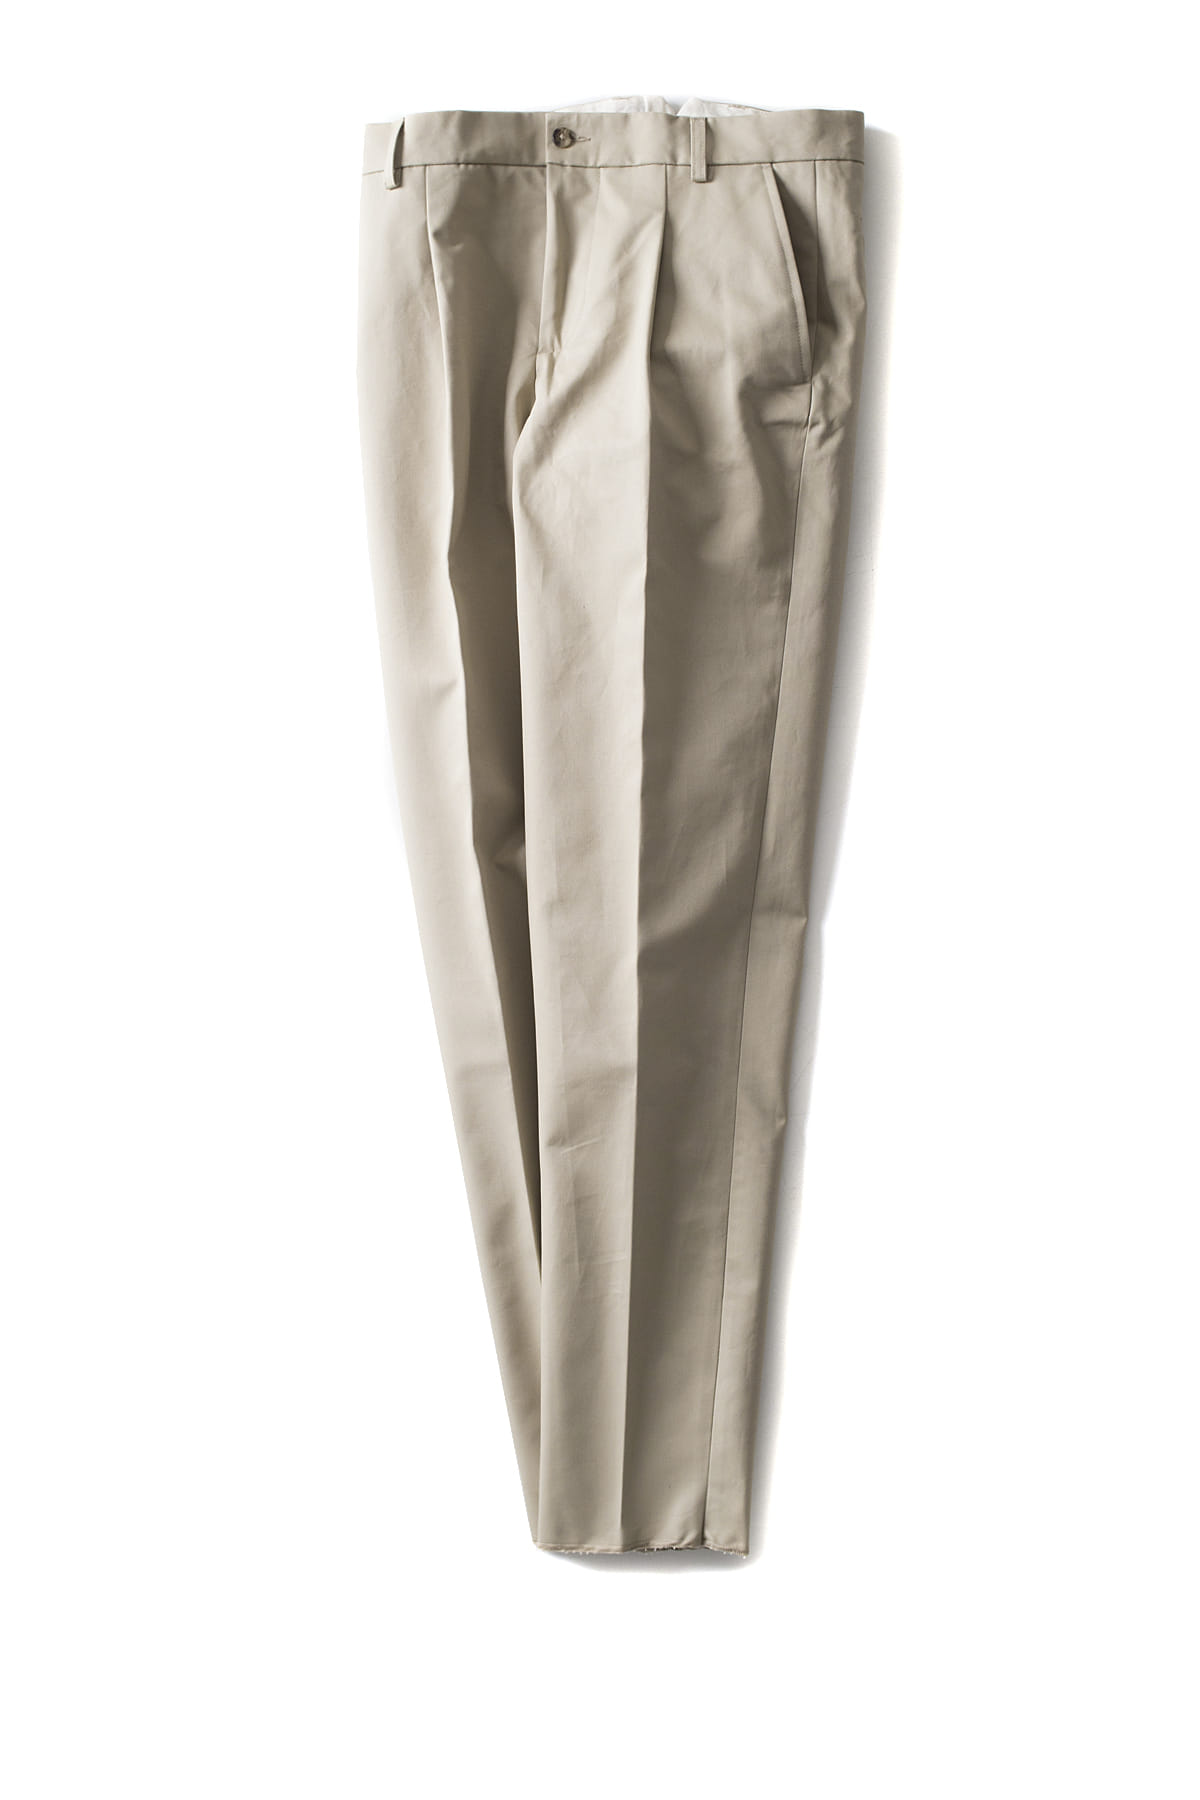 de bonne facture : One Pleat Trousers (Putty)